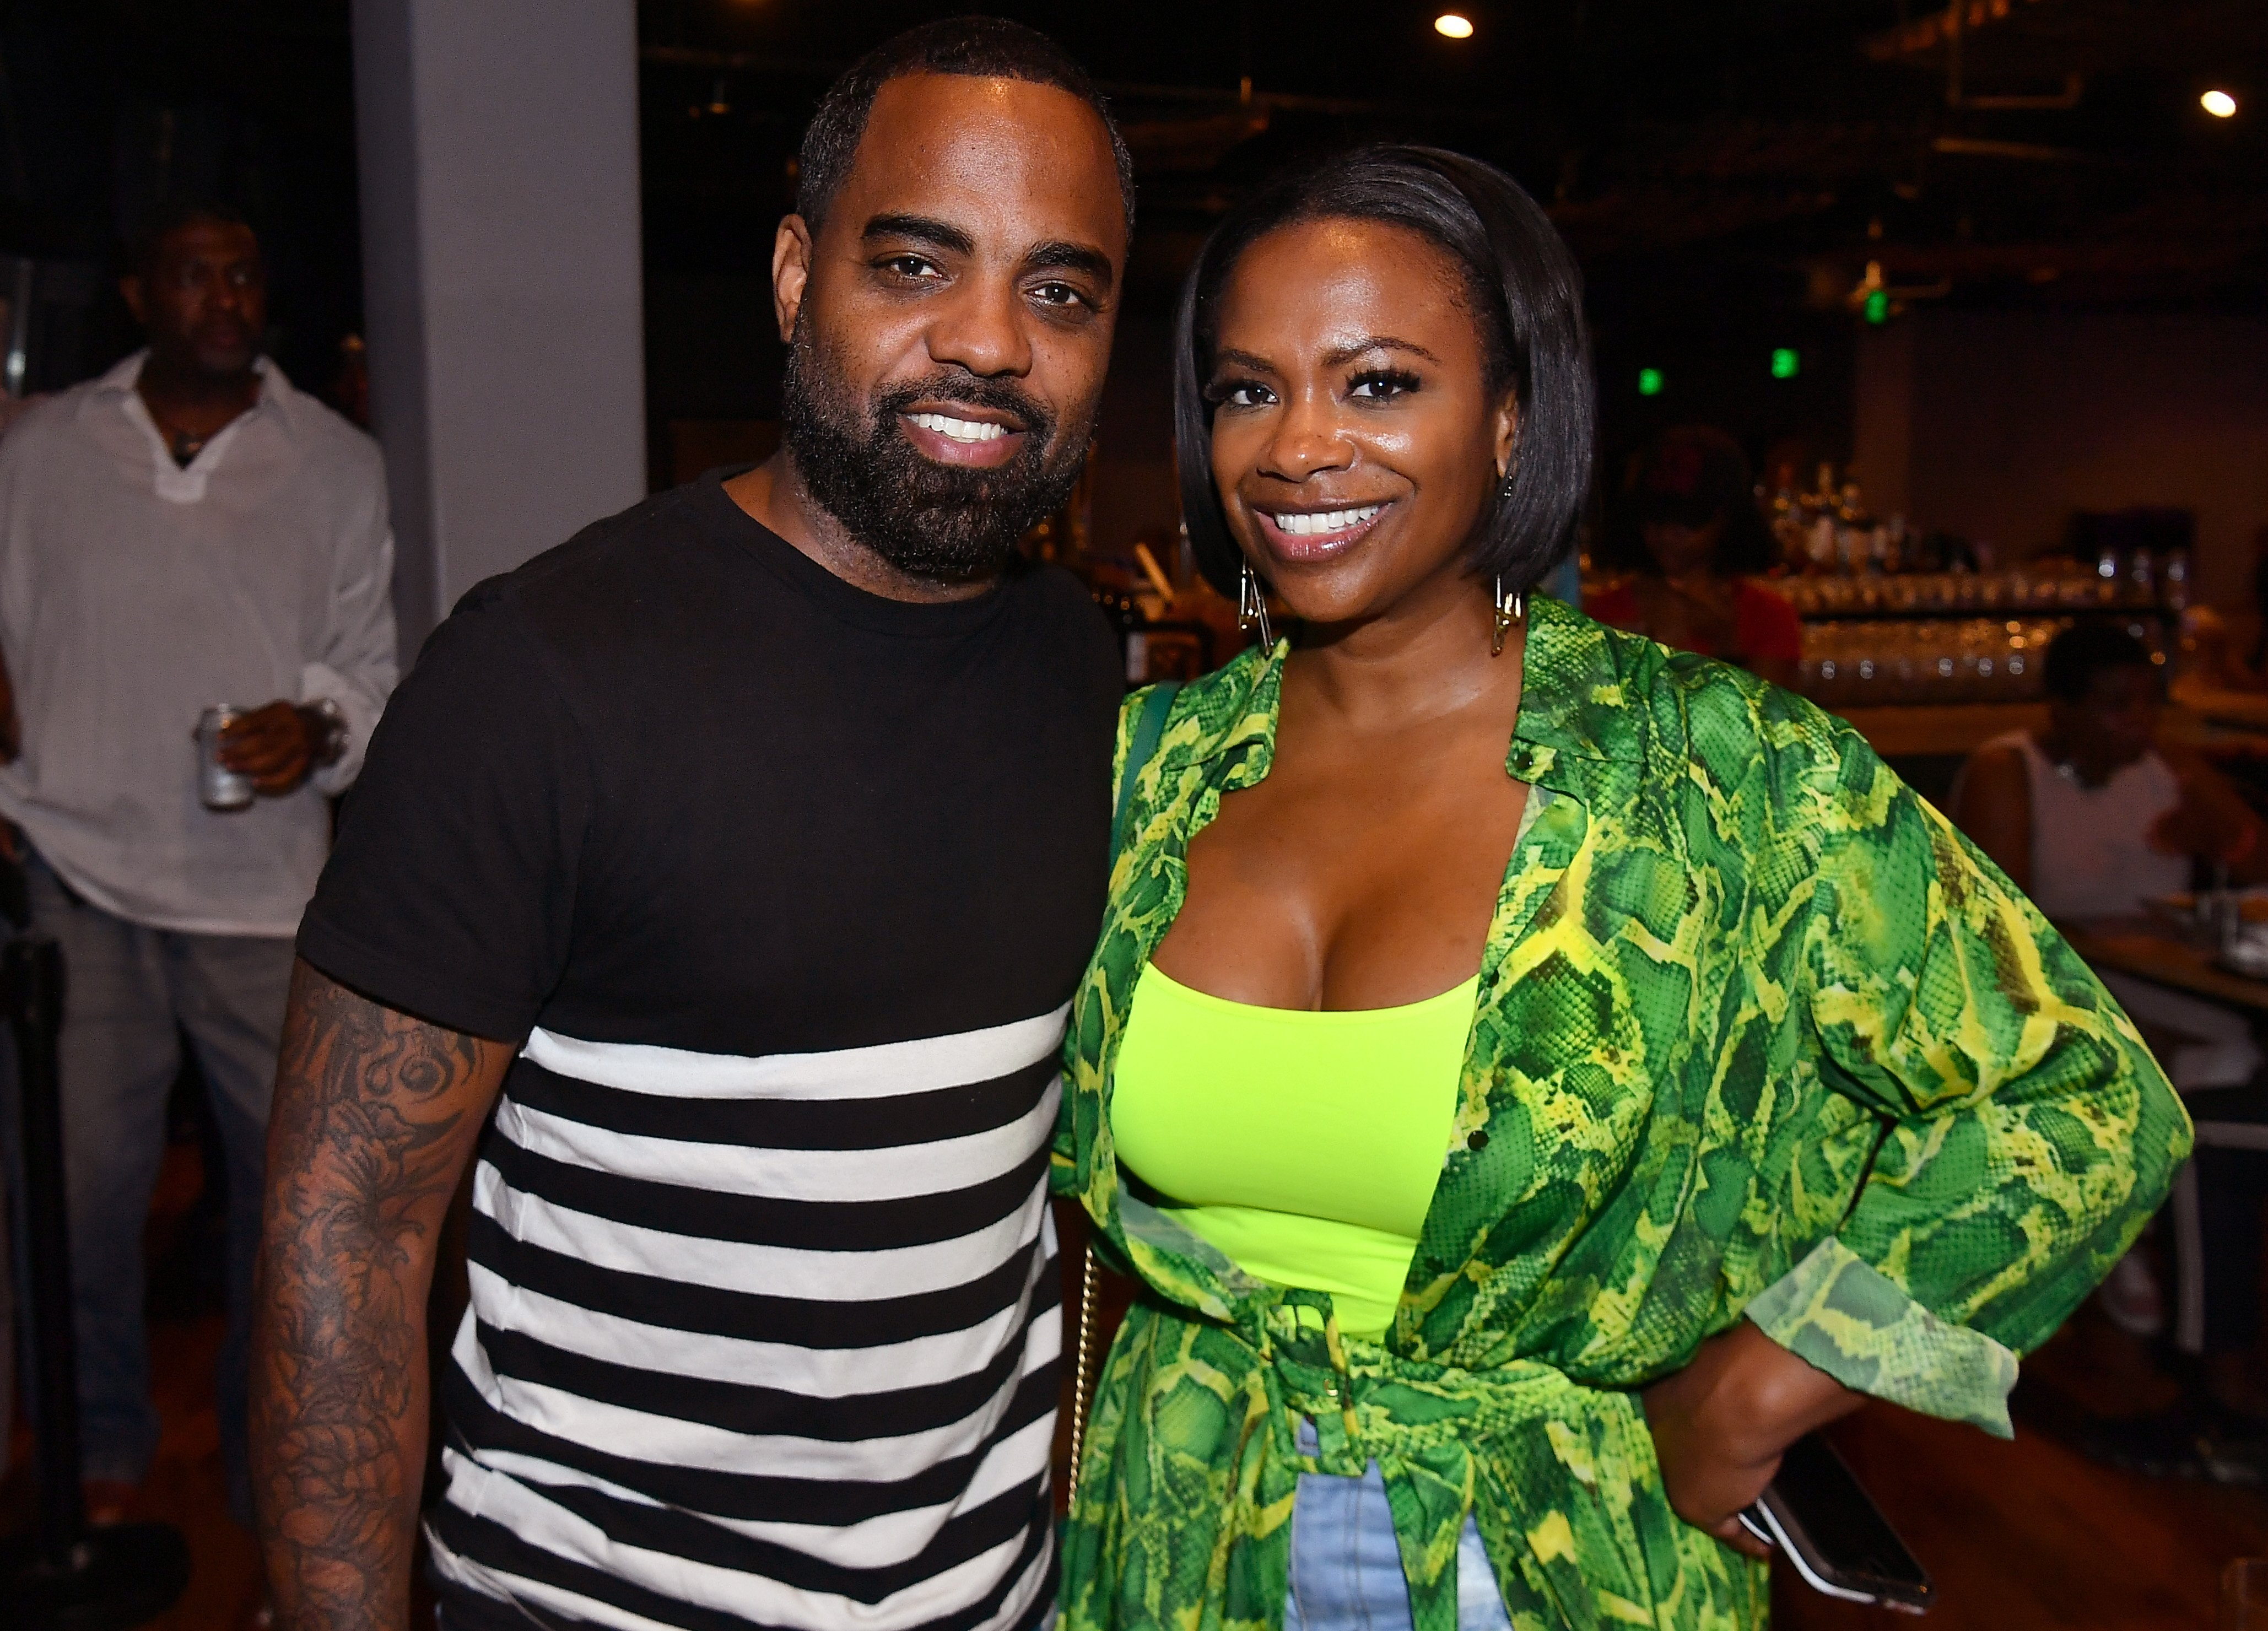 Todd Tucker and Kandi Burruss at Majic 107.5 After Dark at City Winery, 2019 | Photo: Getty Images